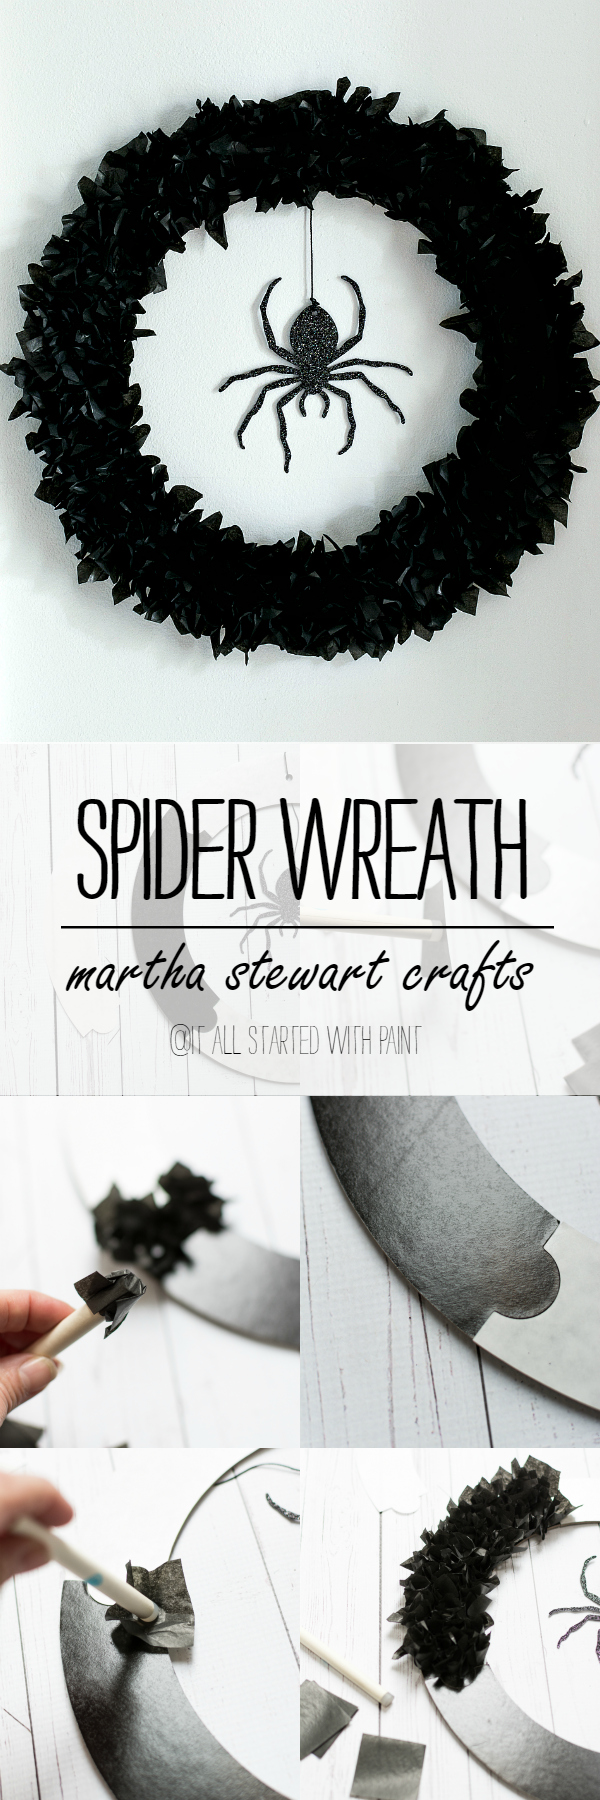 Halloween Crafts: Halloween Wreath Idea Using Tissue Paper